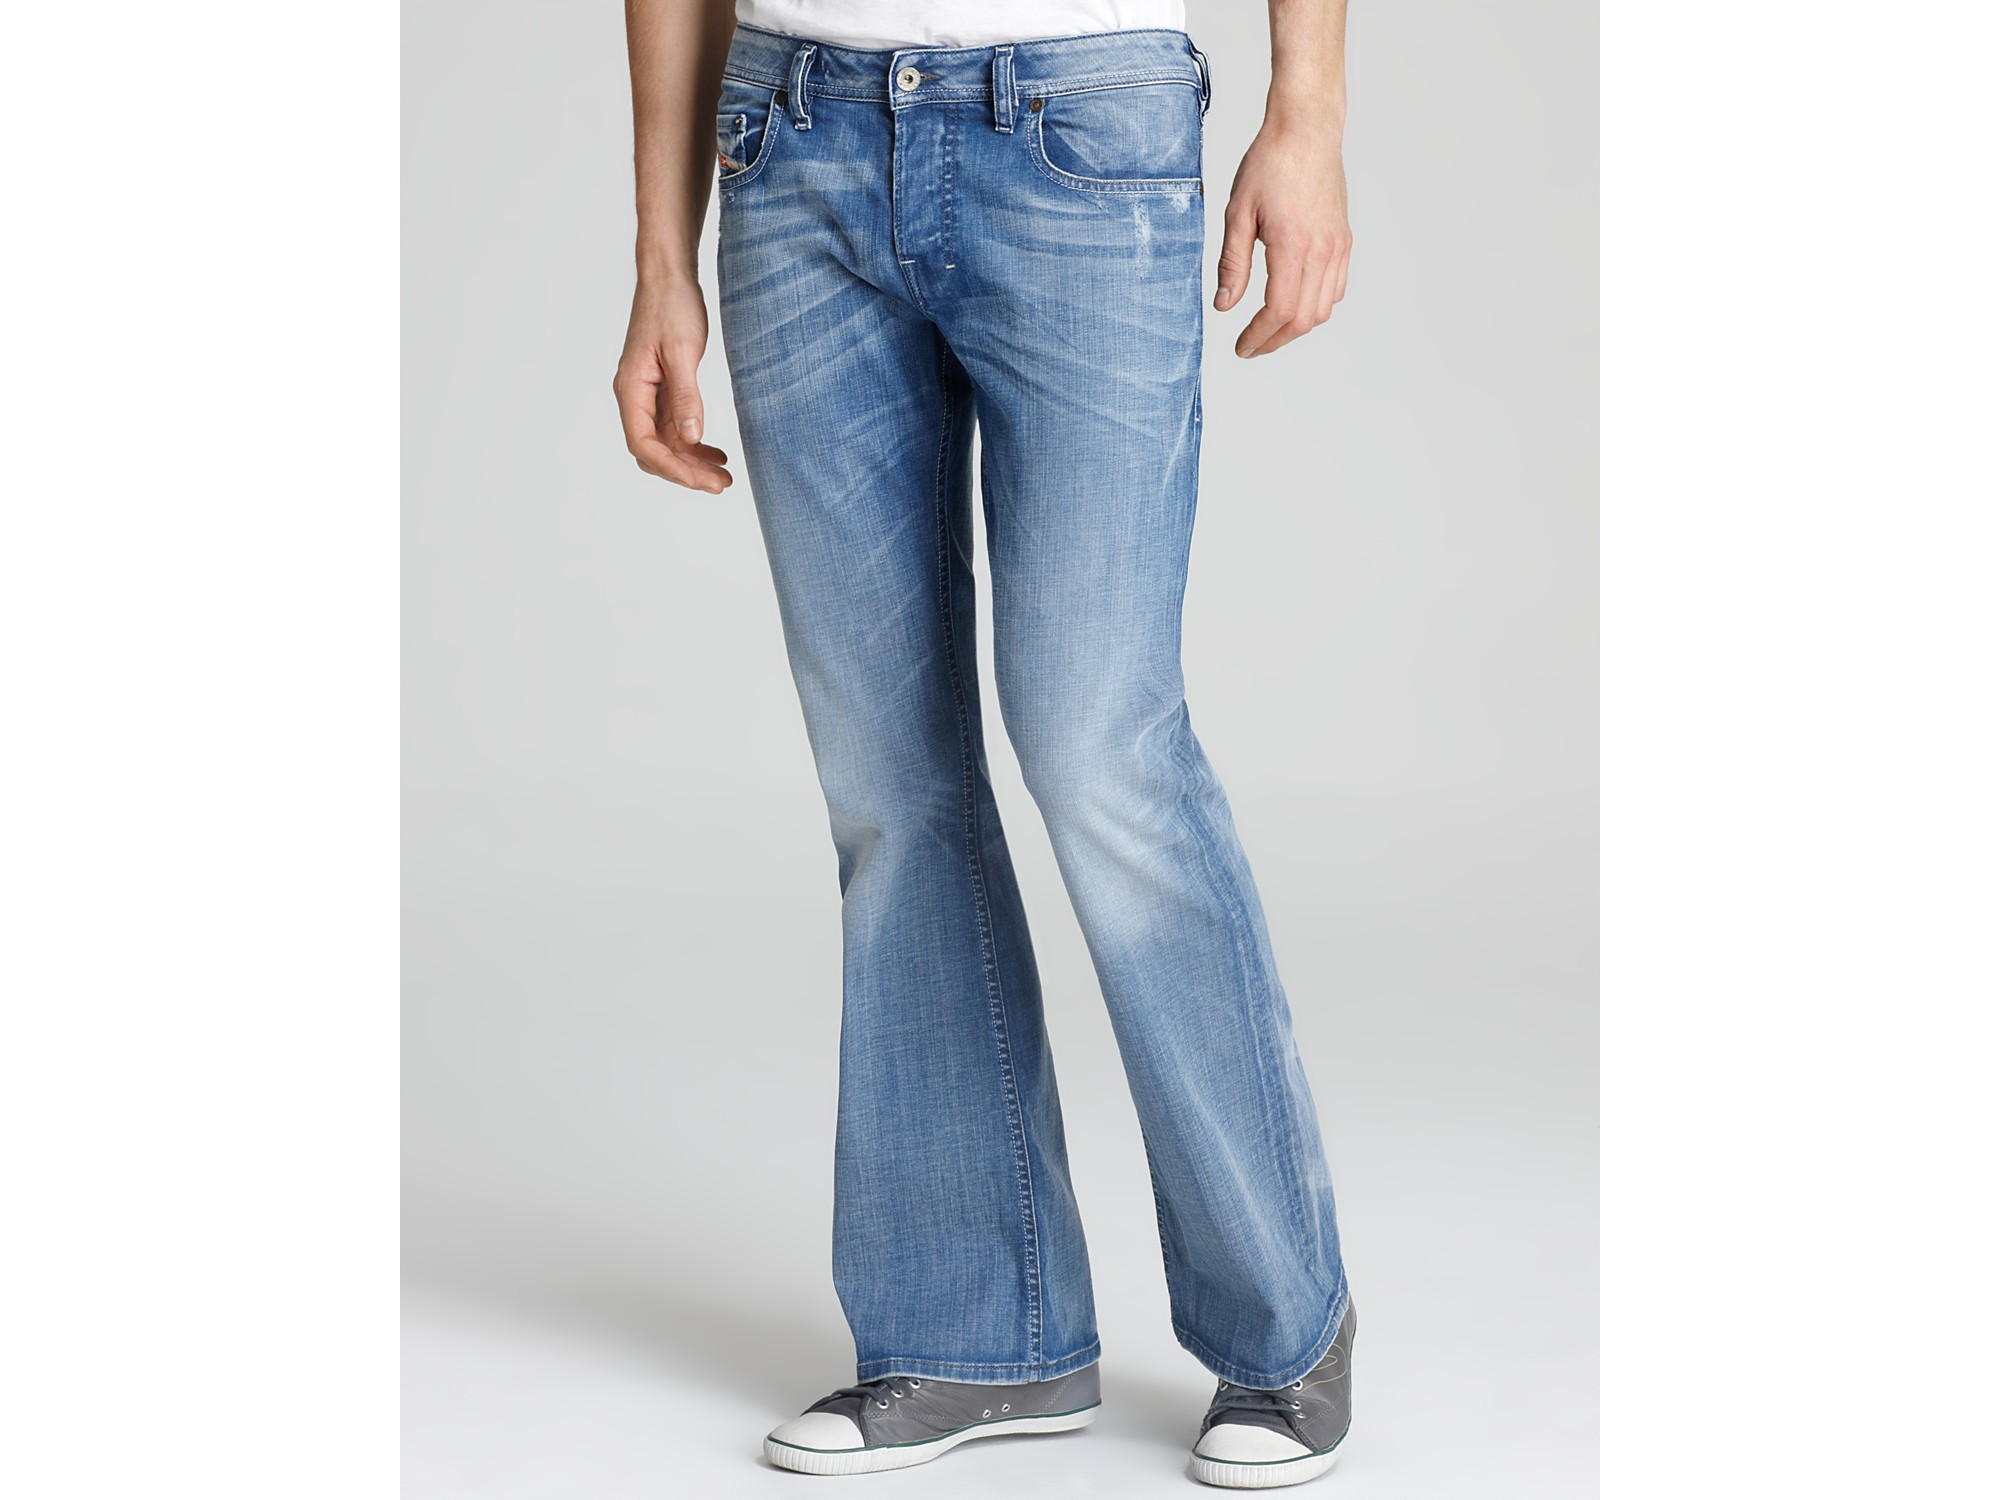 Ash Regular Fit Bootcut Jeans in Light Blue Wash in Blue for Men